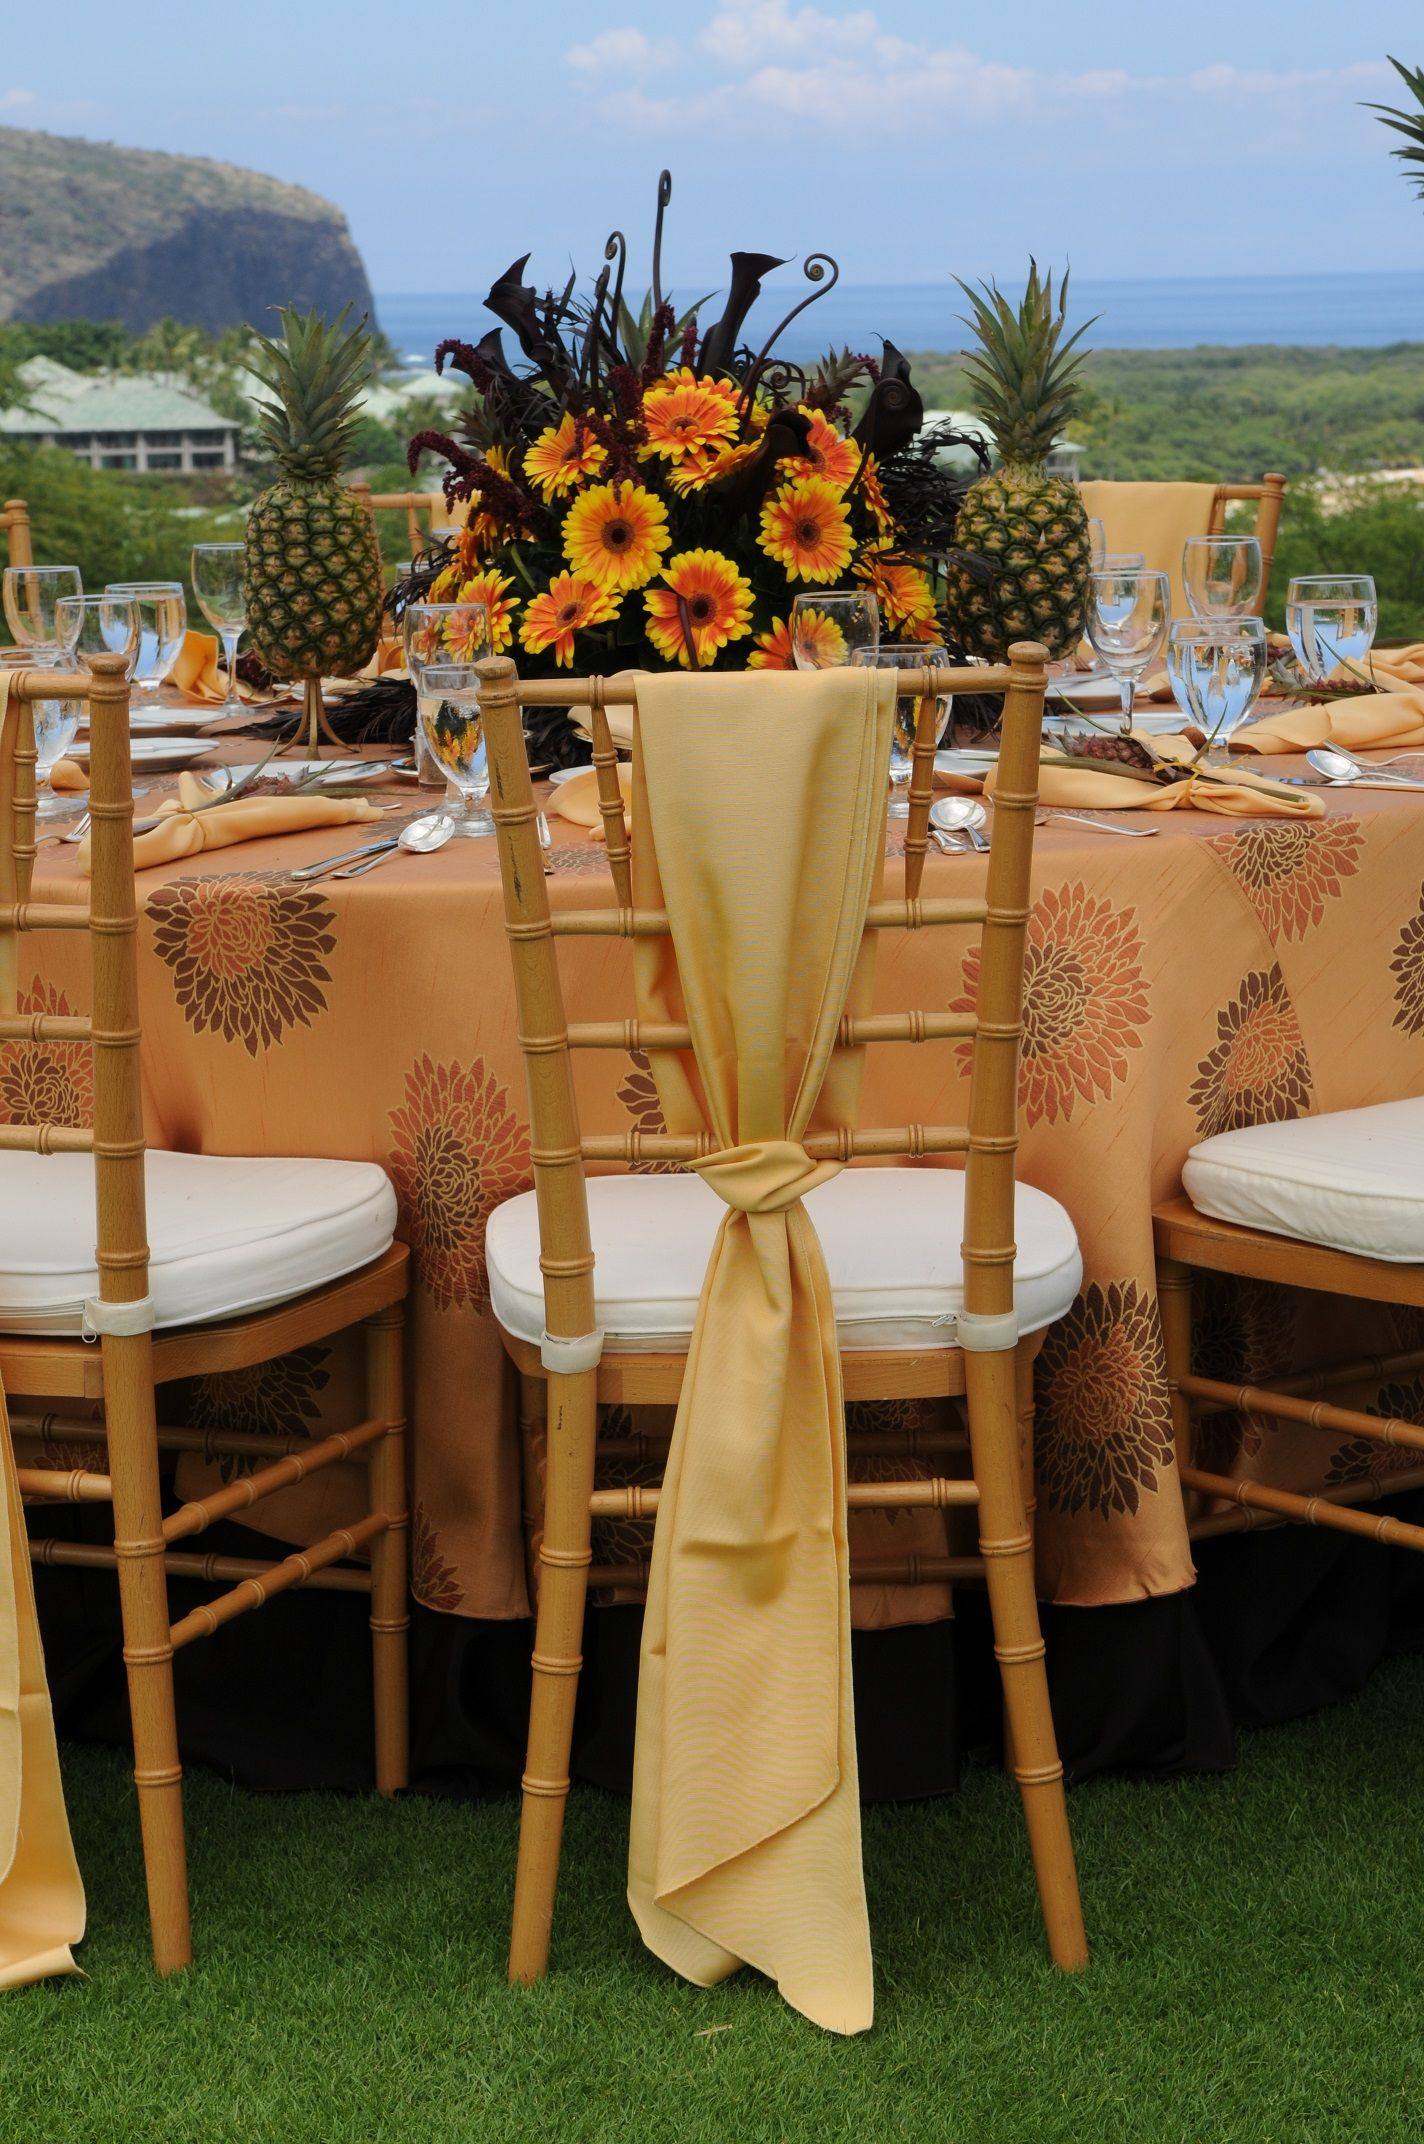 Private luncheon on golf course on the island of Lanai - guests arrived via helicopter from Maui!